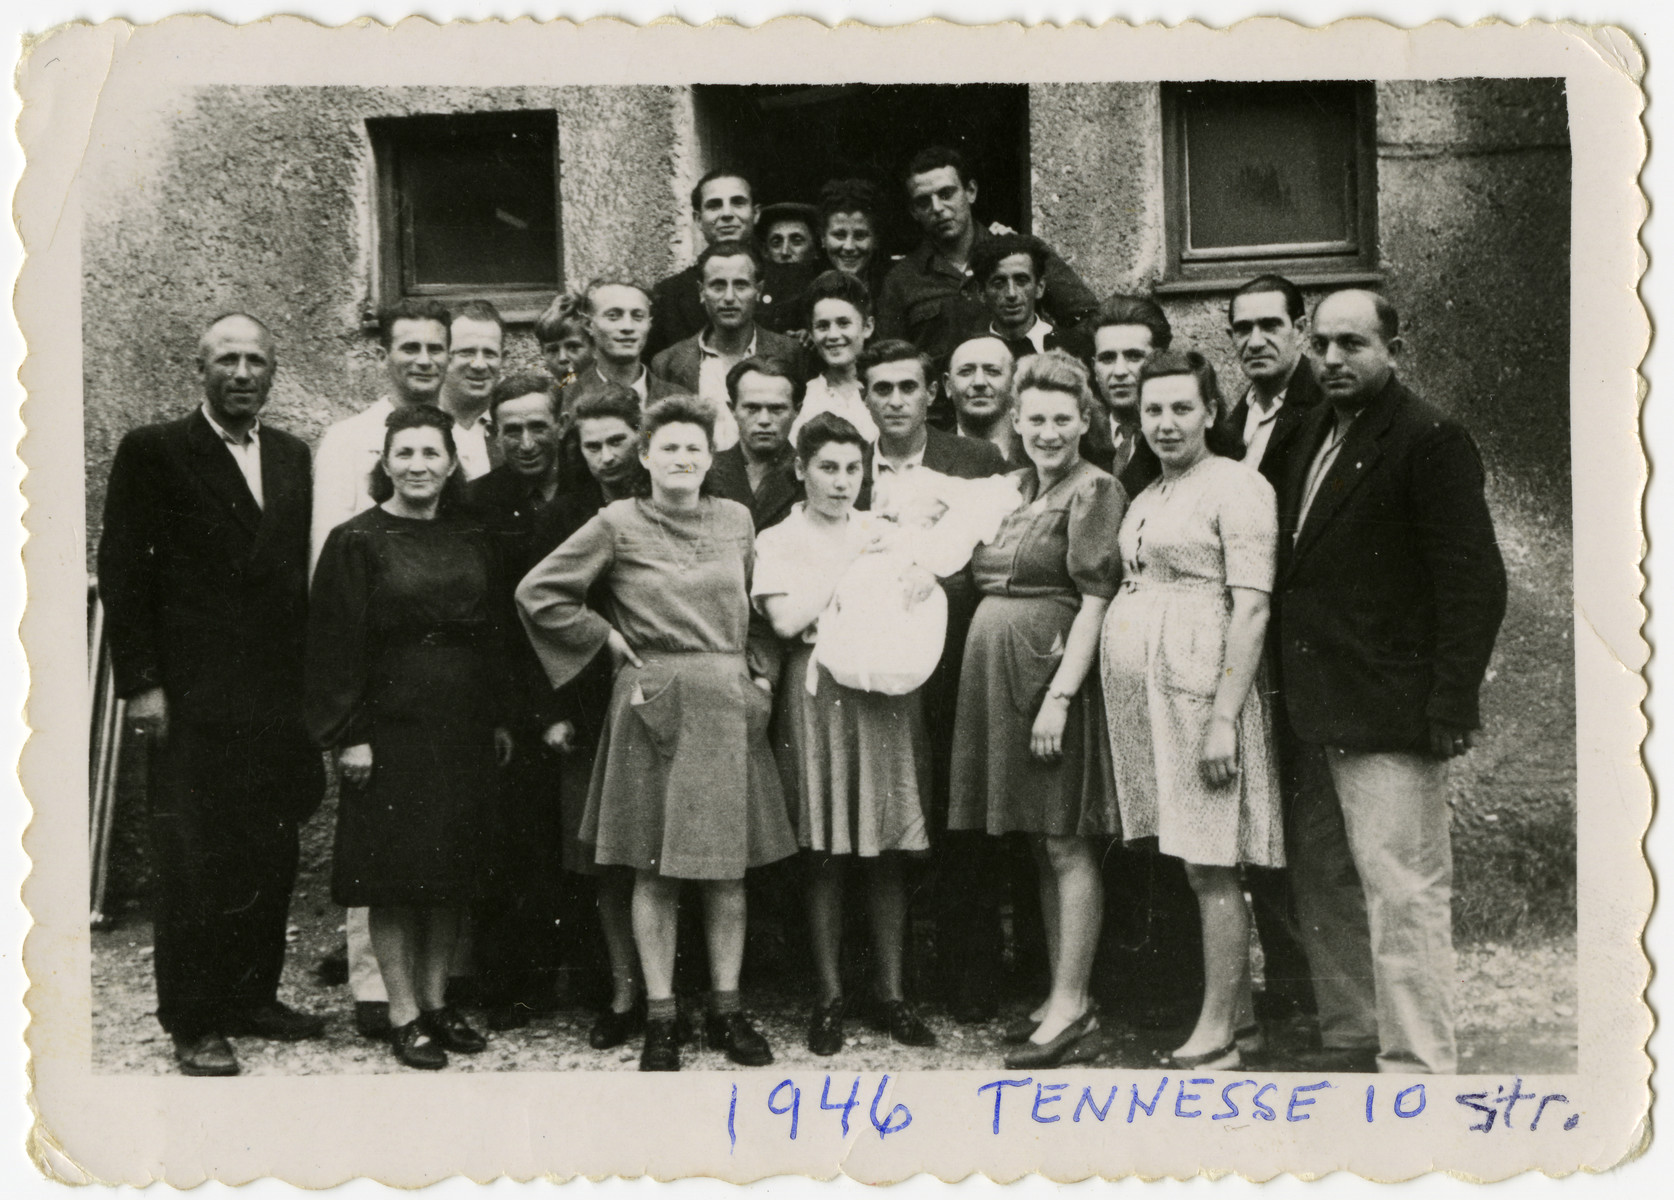 A large group of men and women, including several pregnant women and one holding an infant, pose outside 10 Tennesse Street in the Foehrenwald displaced person's camp.  Leon and Sally Korn are pictured in the third row in the center.